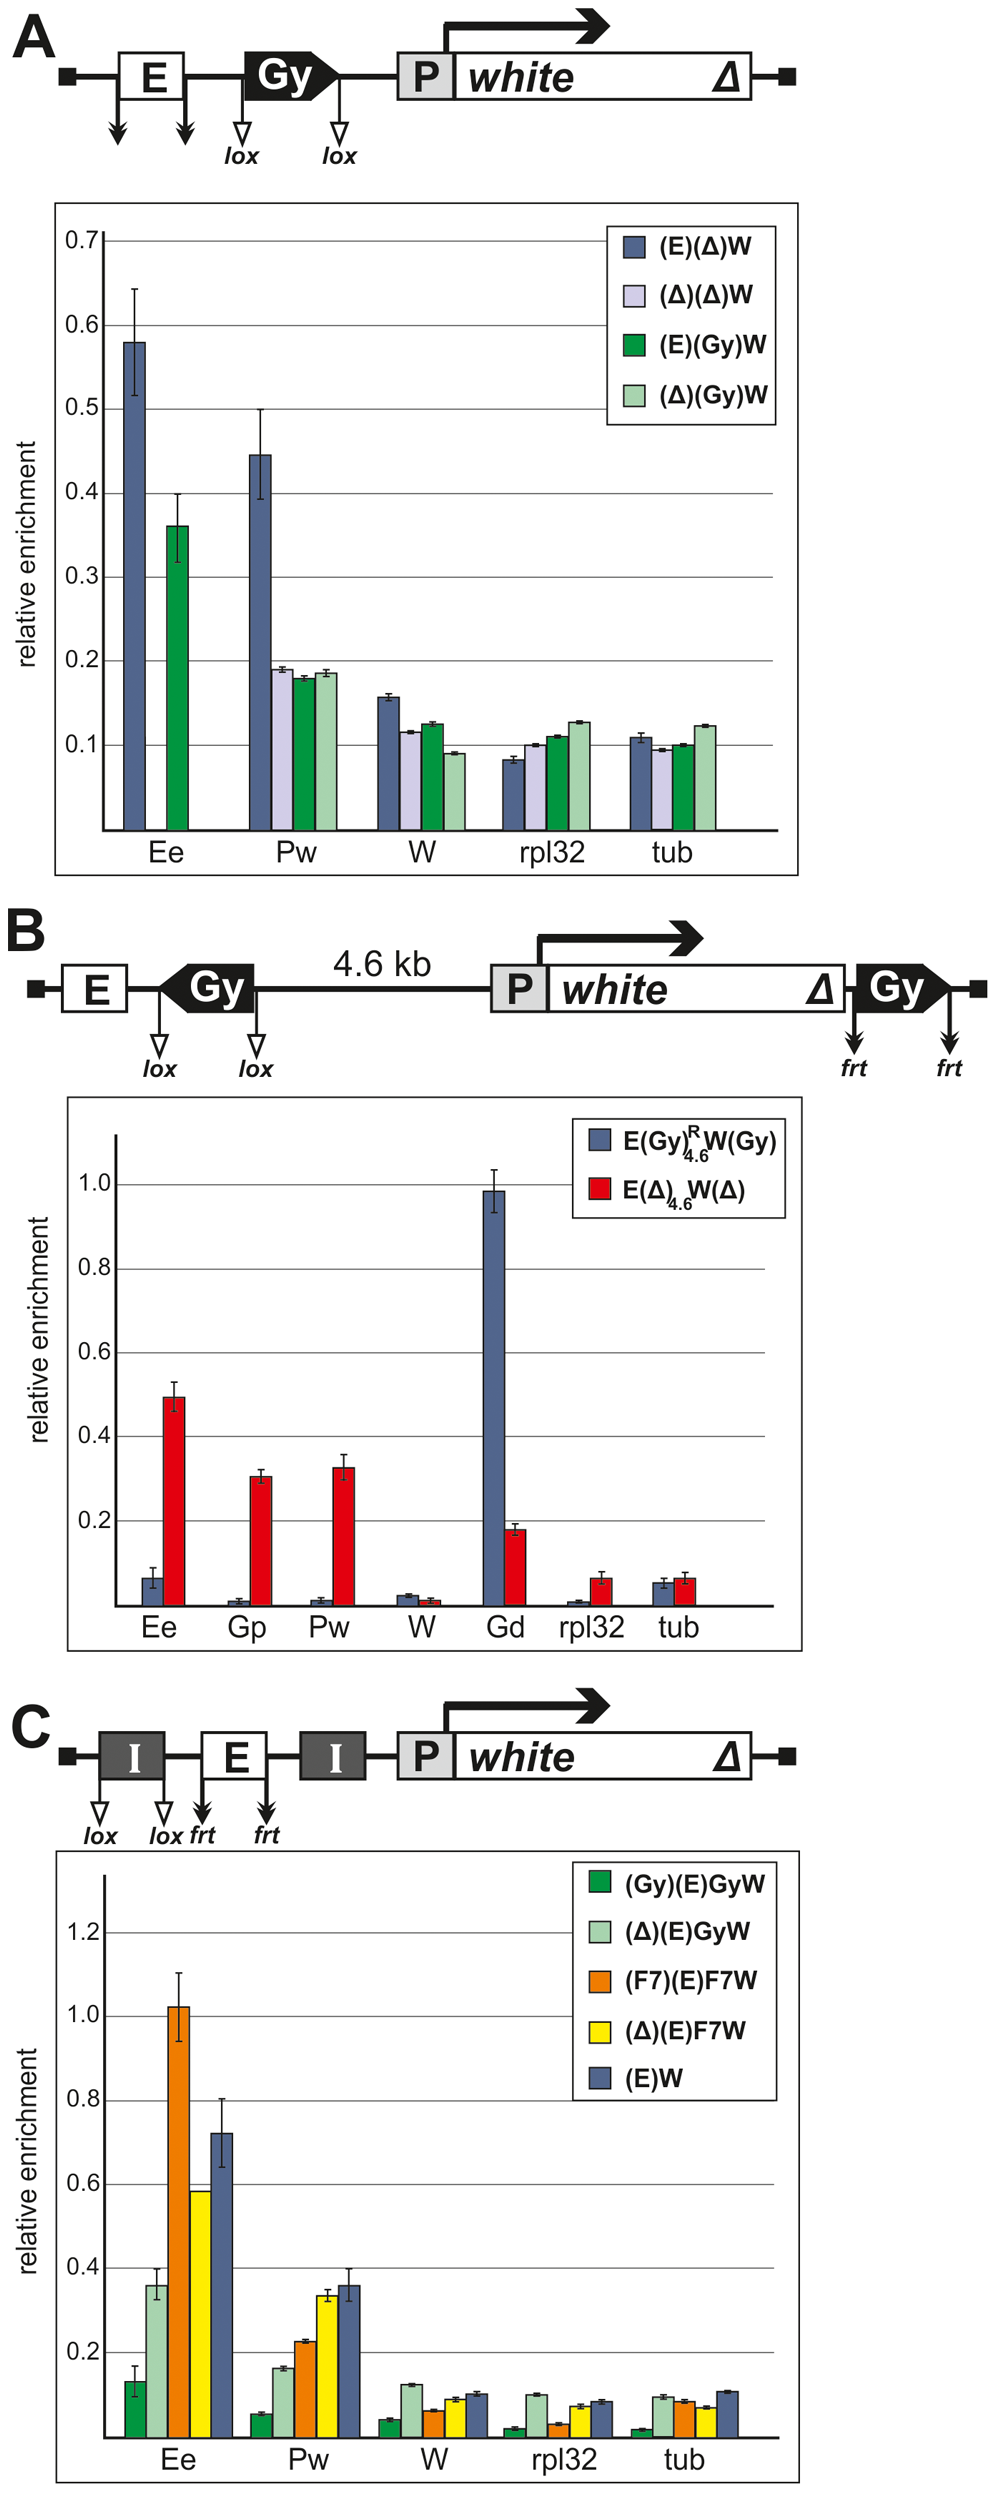 Binding of Zeste to the <i>white</i> enhancer, promoter, and coding region in the transgenic constructs.